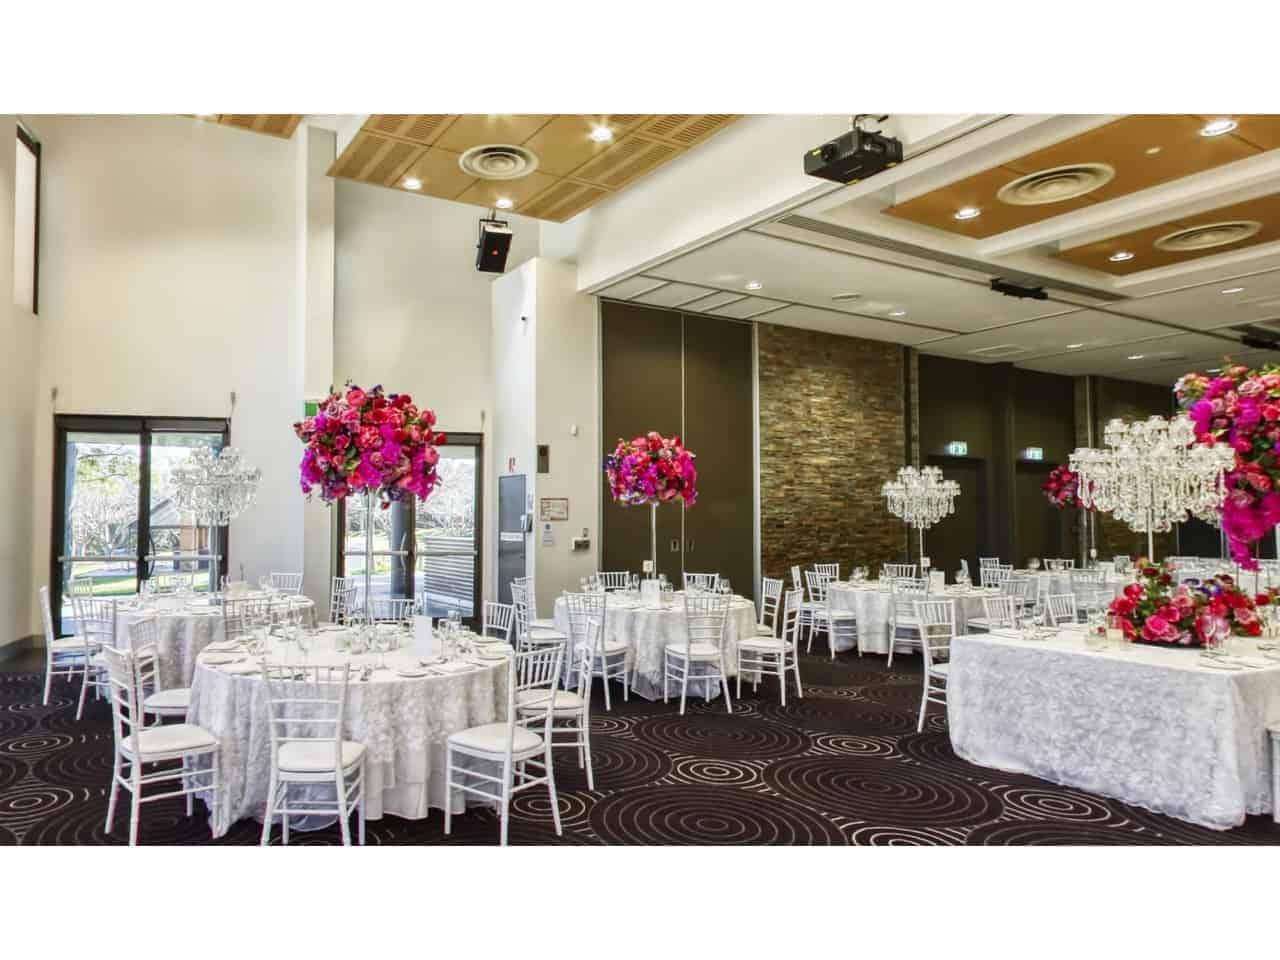 Sydney private function room